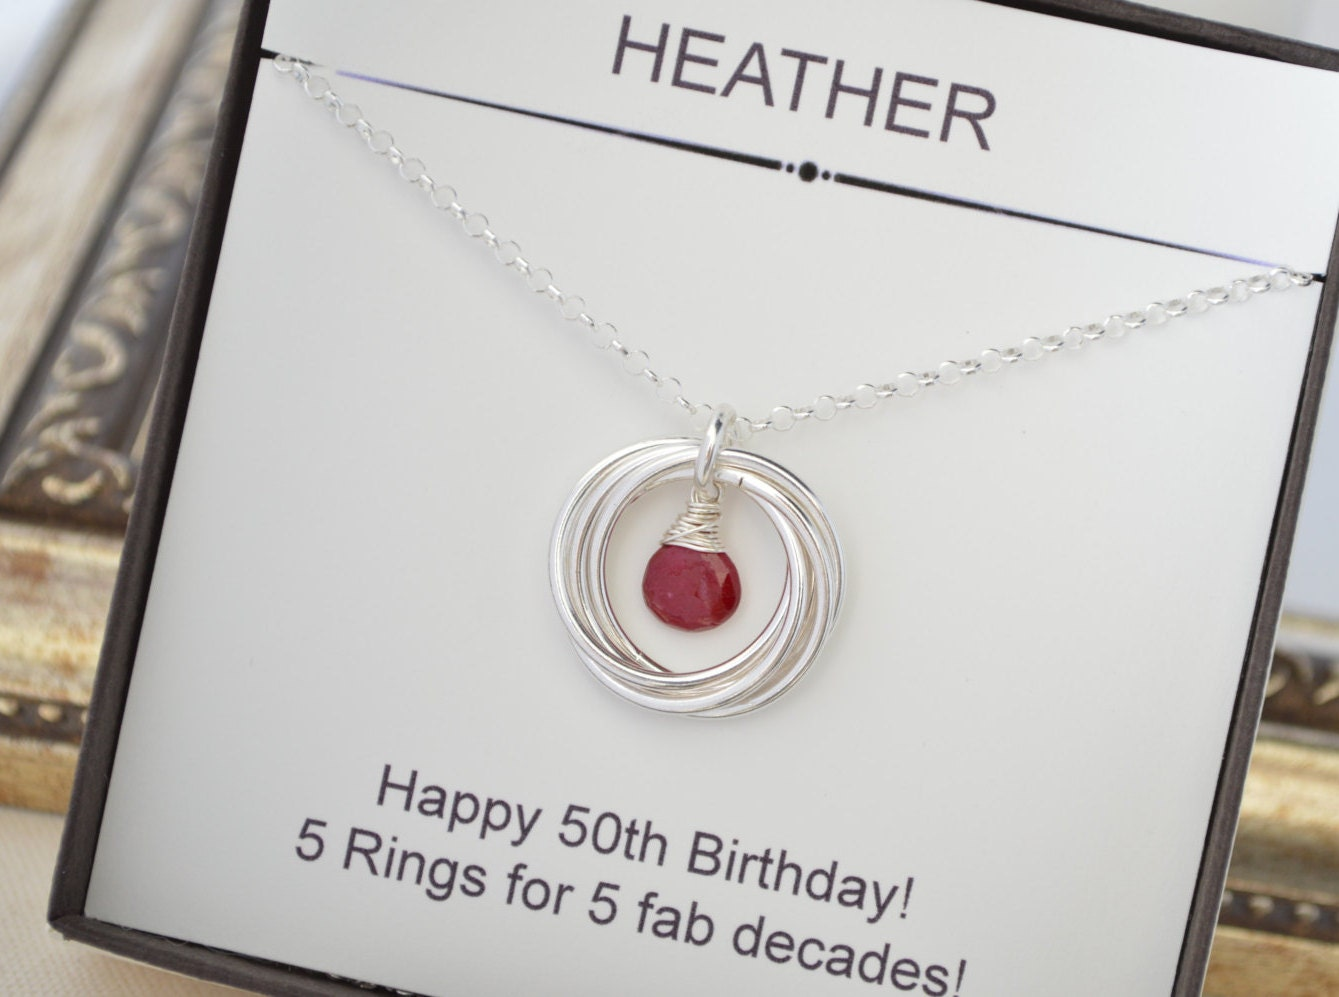 Gifts For 50th Wedding Anniversary For Friends: 50th Birthday Gift For Mom, 5th Anniversary Gift For Wife